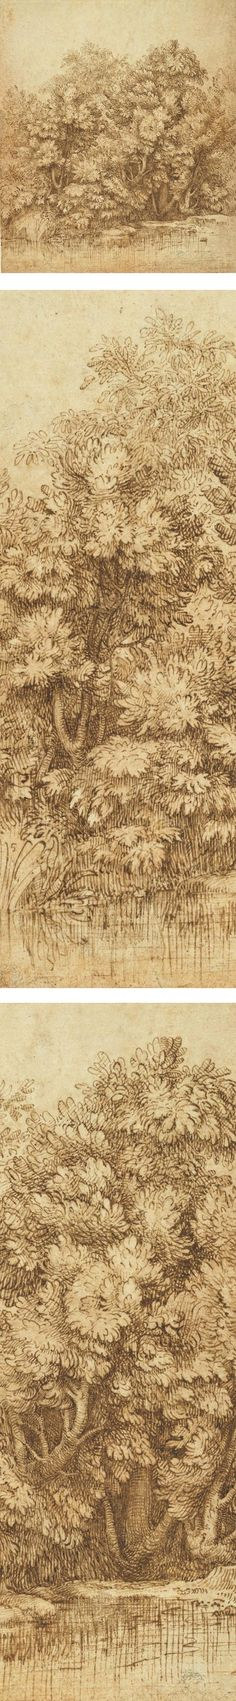 Titian pen drawing, Trees Near a Pool of Water || Lines and Colors